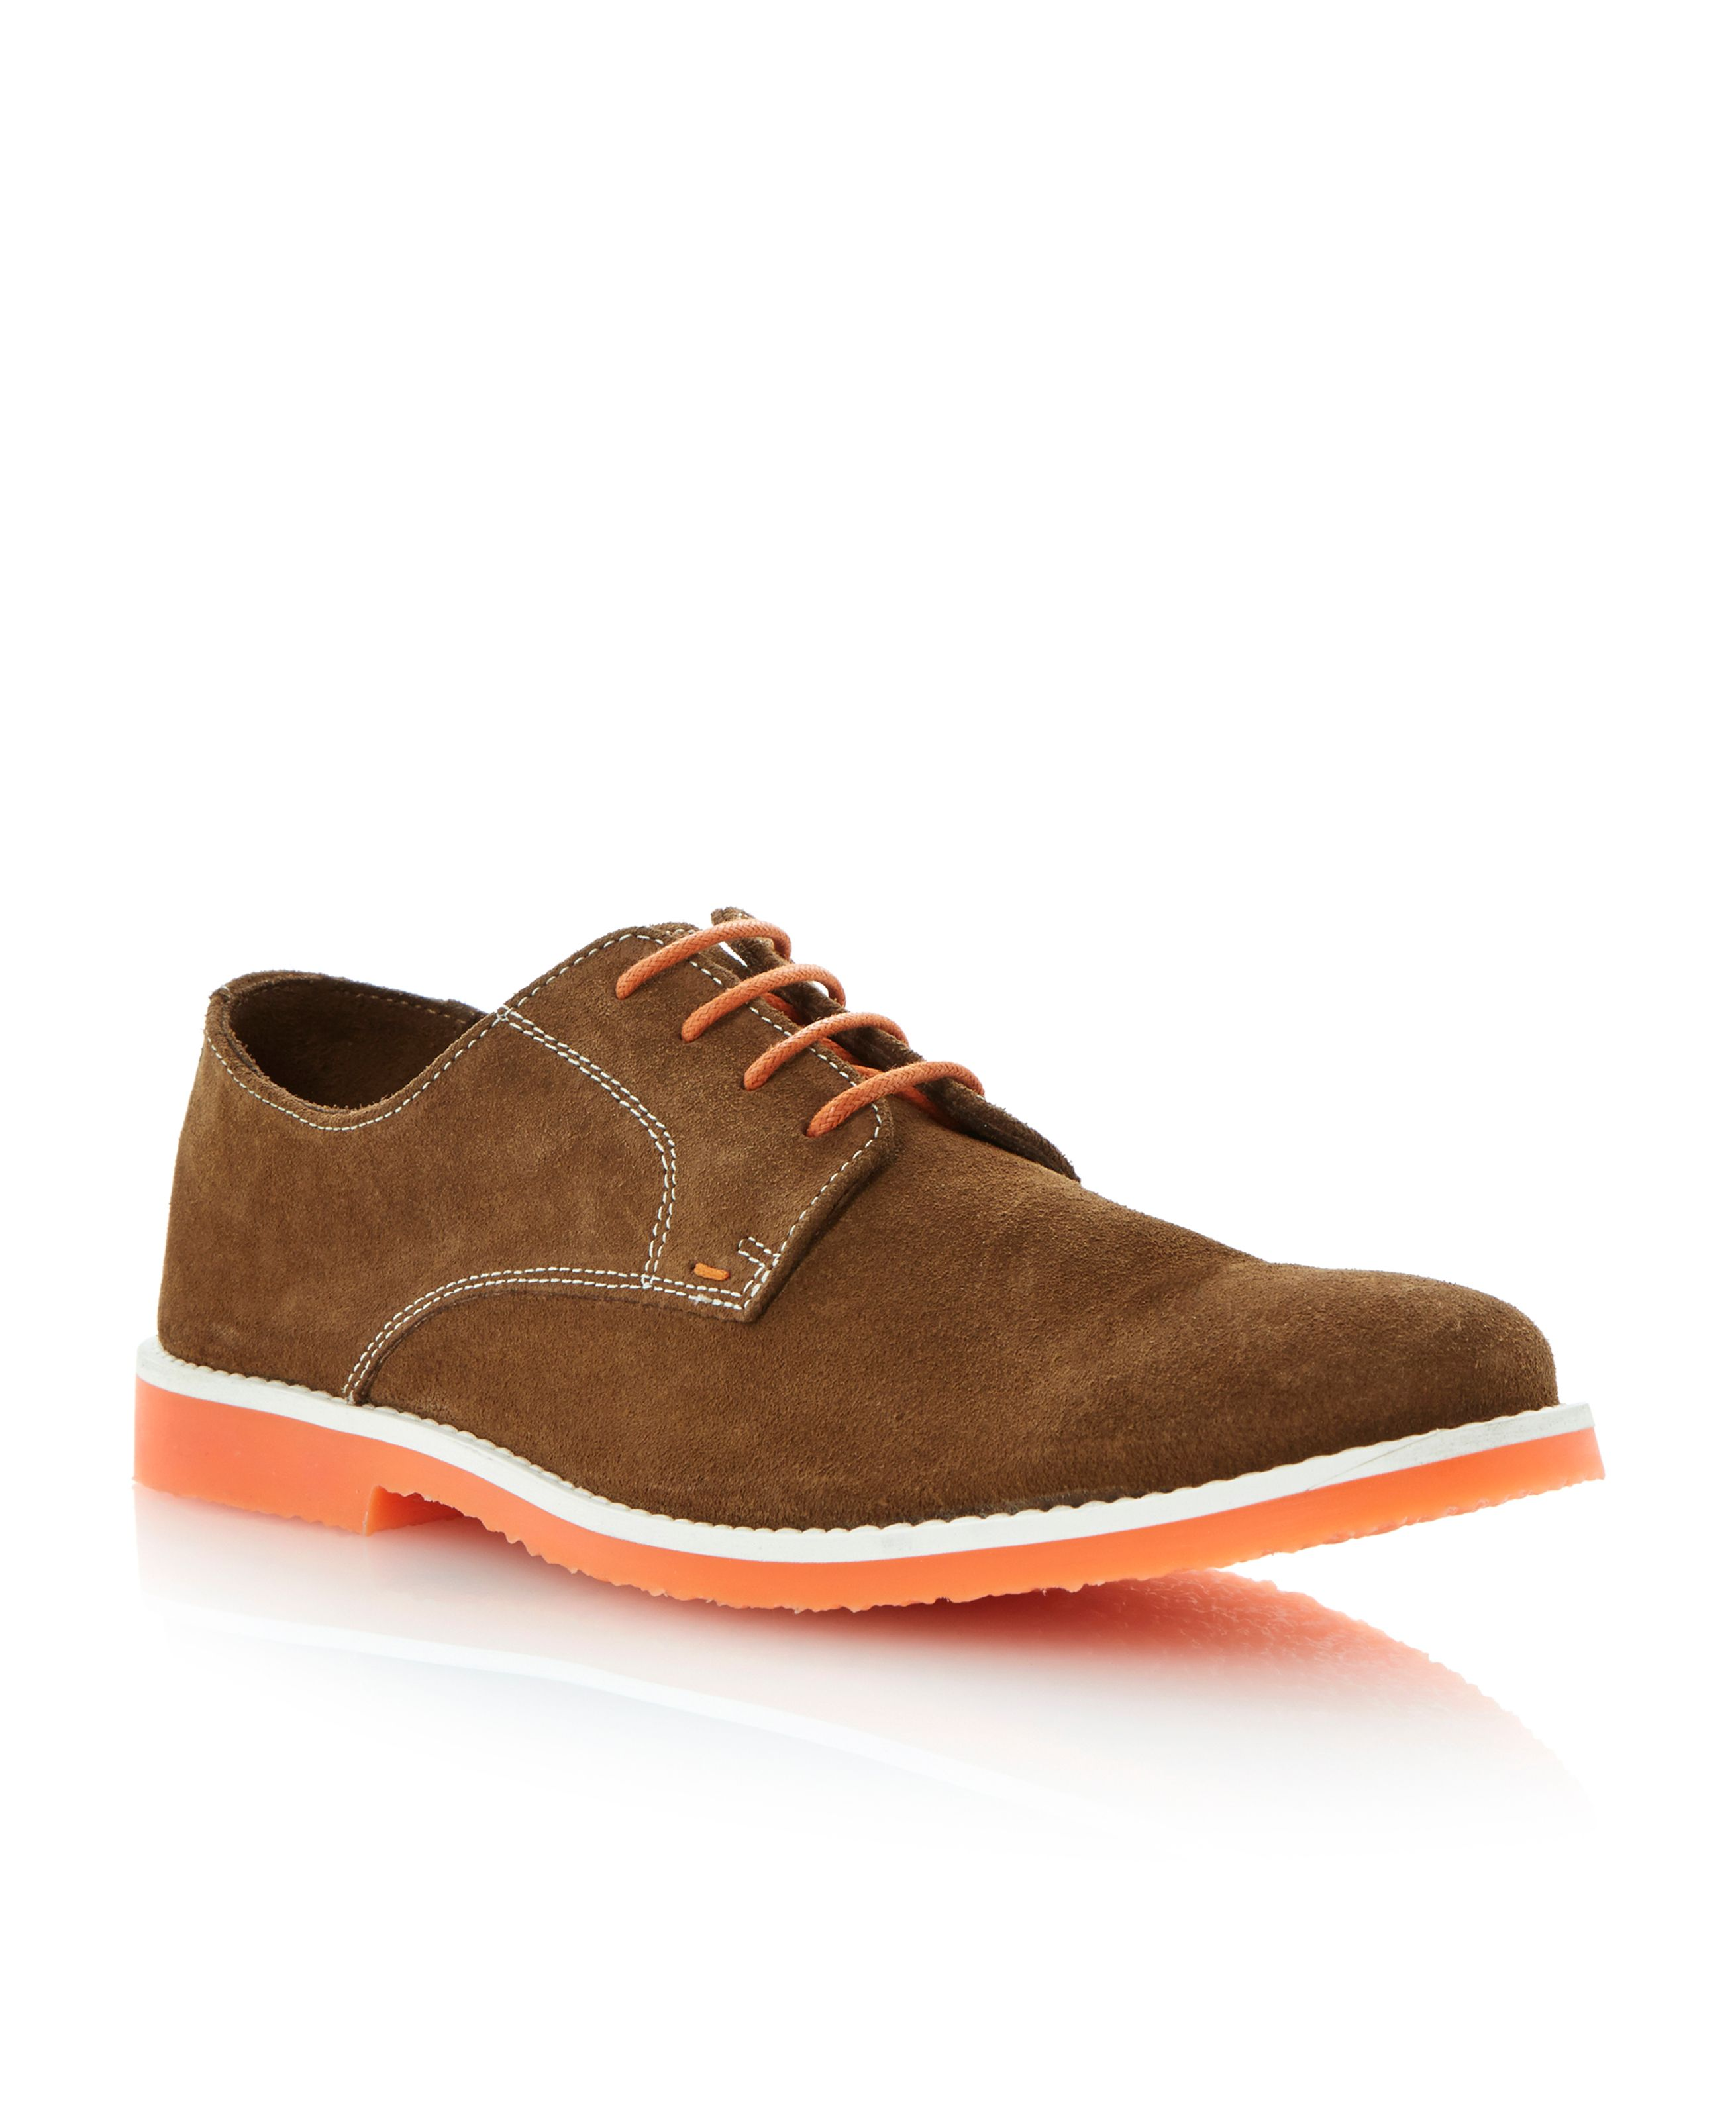 Bailey lace up colour pop desert shoes